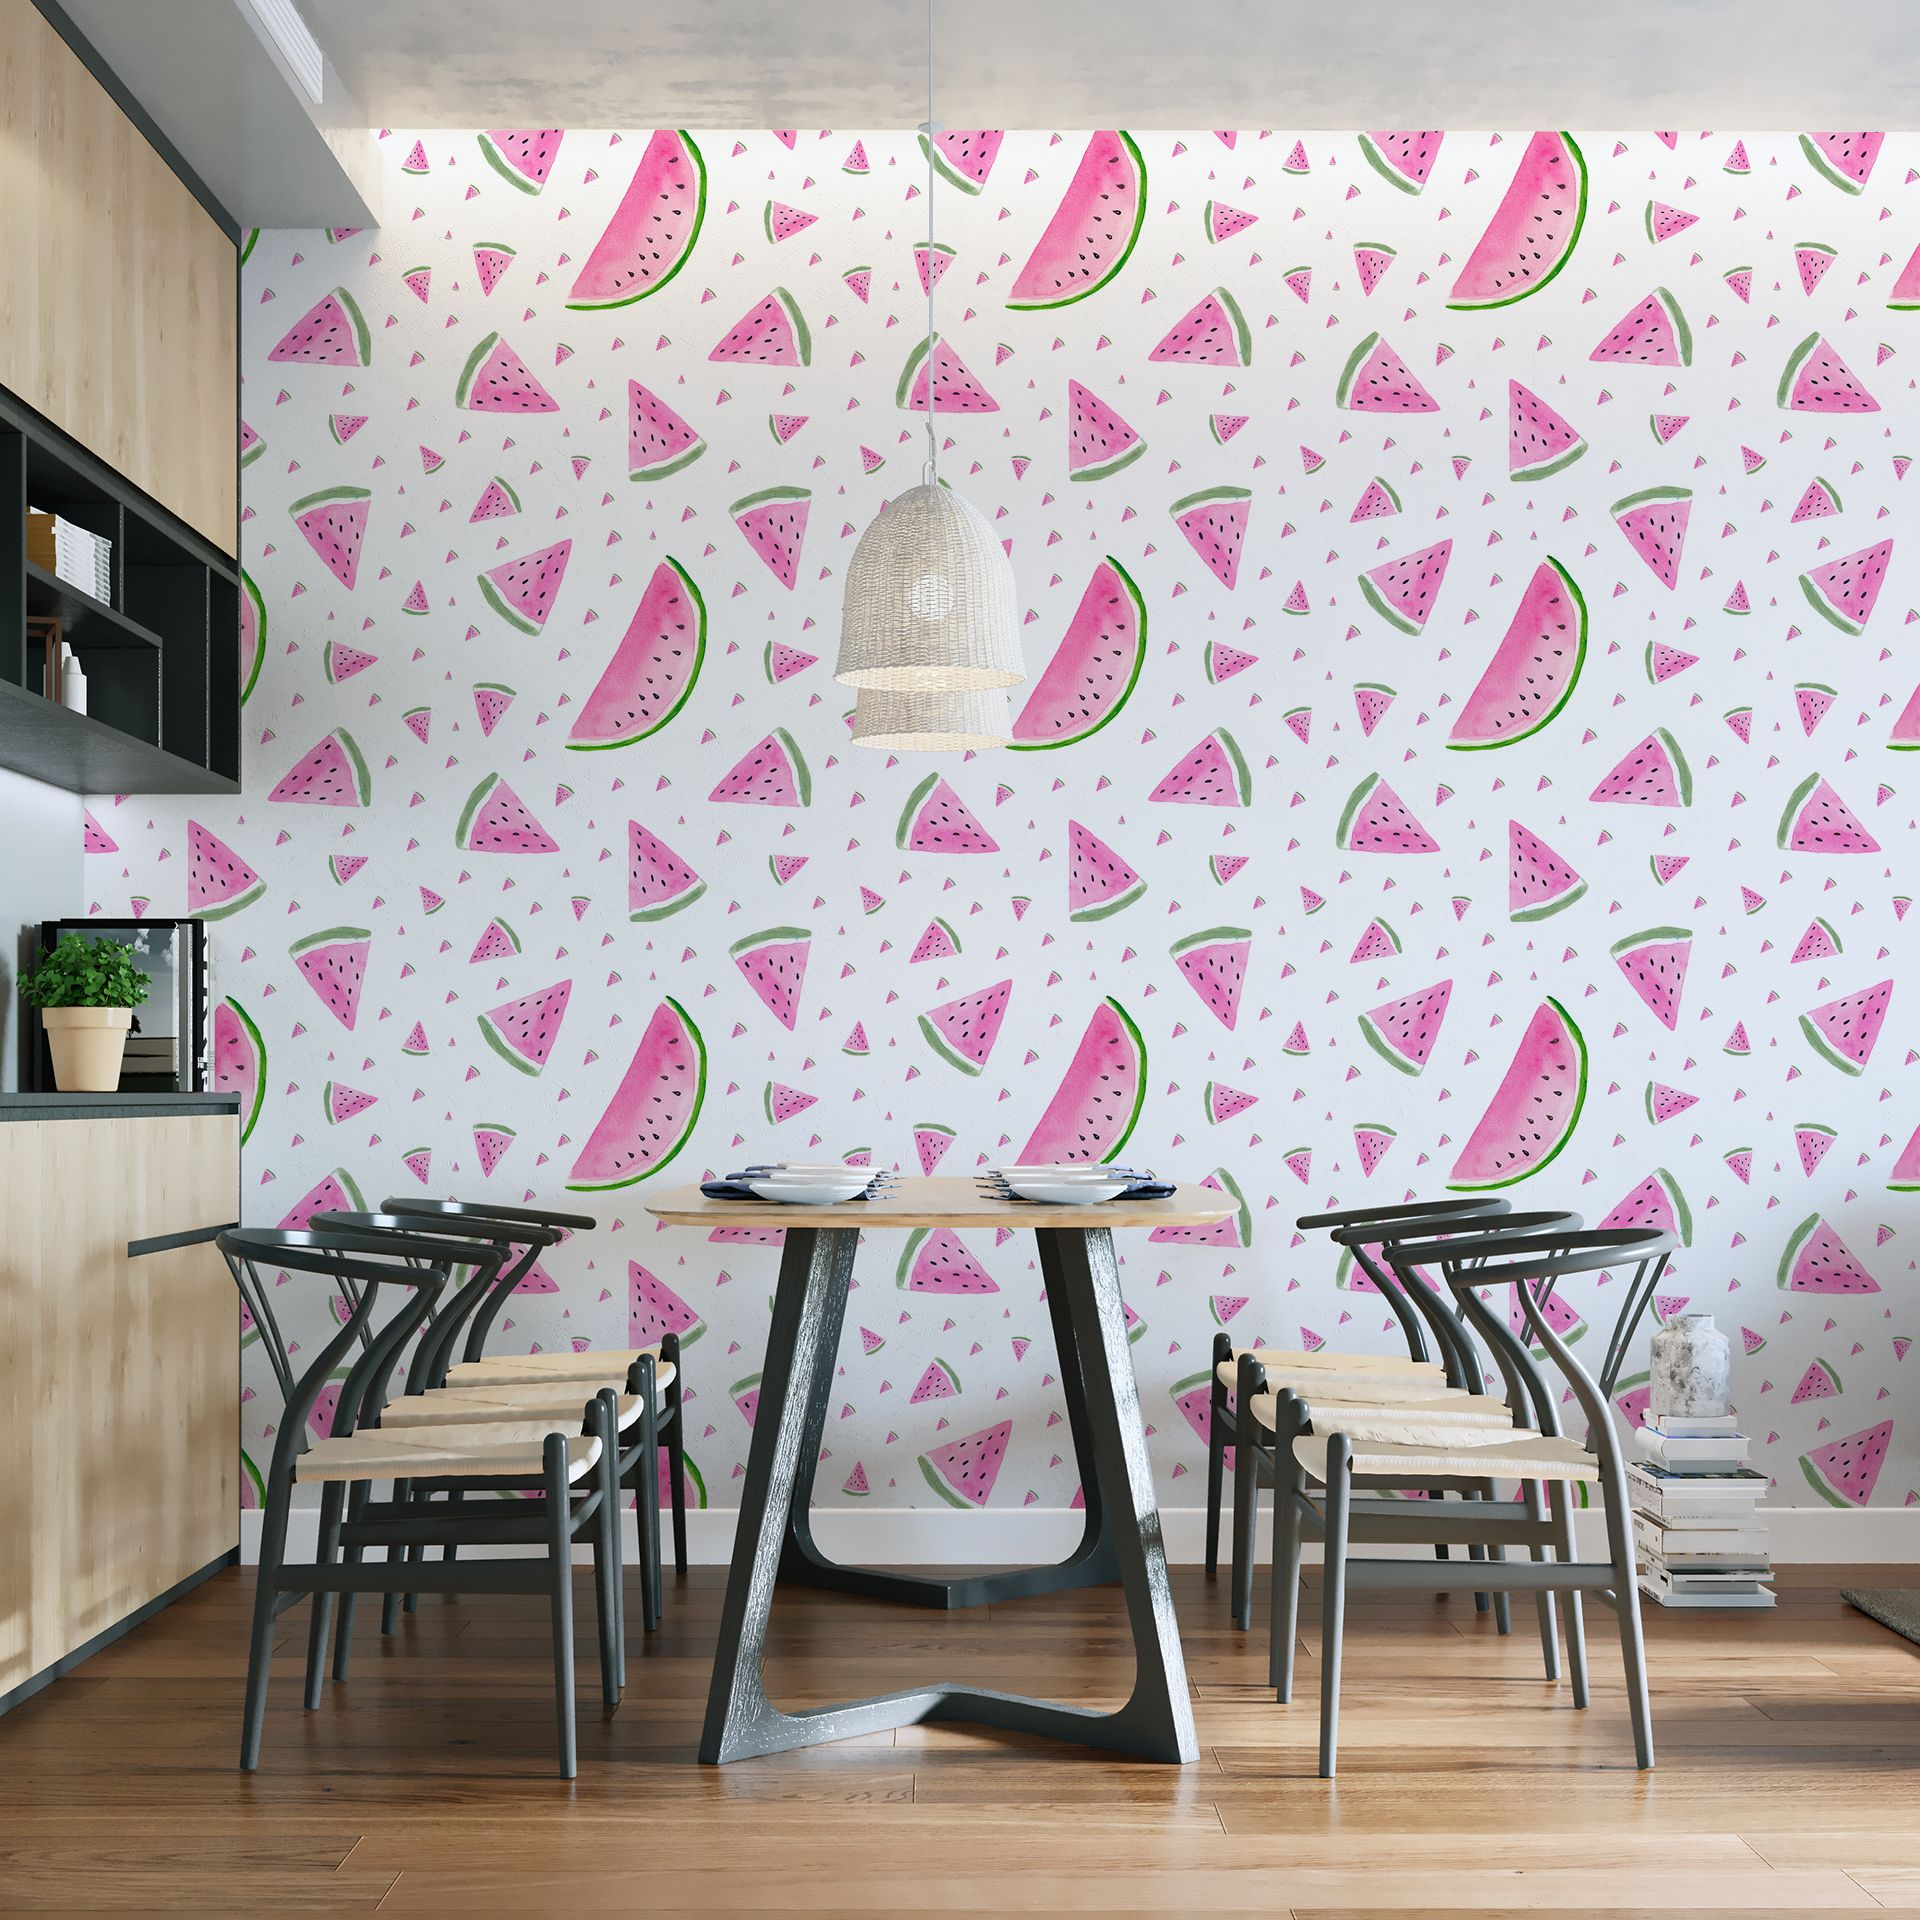 Get our new, Adhesive, Hand Drawn Removable Wallpaper. Non-toxic WallaWall Wallpaper, it will give the rooms in your home a colorful meaning. You can get these by clicking the pin.💯 #wallpaper #wallpapers #interiordesign #d #wallpapermurah #wallpaperdinding #homedecor #art #design #wallpapersticker #interior #love #photography #wallpaperdecor #wallsticker #like #anime #walldecor #dekorasirumah #aesthetic #instagram #follow #decor #wallcovering #wallpaperjakarta #nature #tumblr #wall #instagood